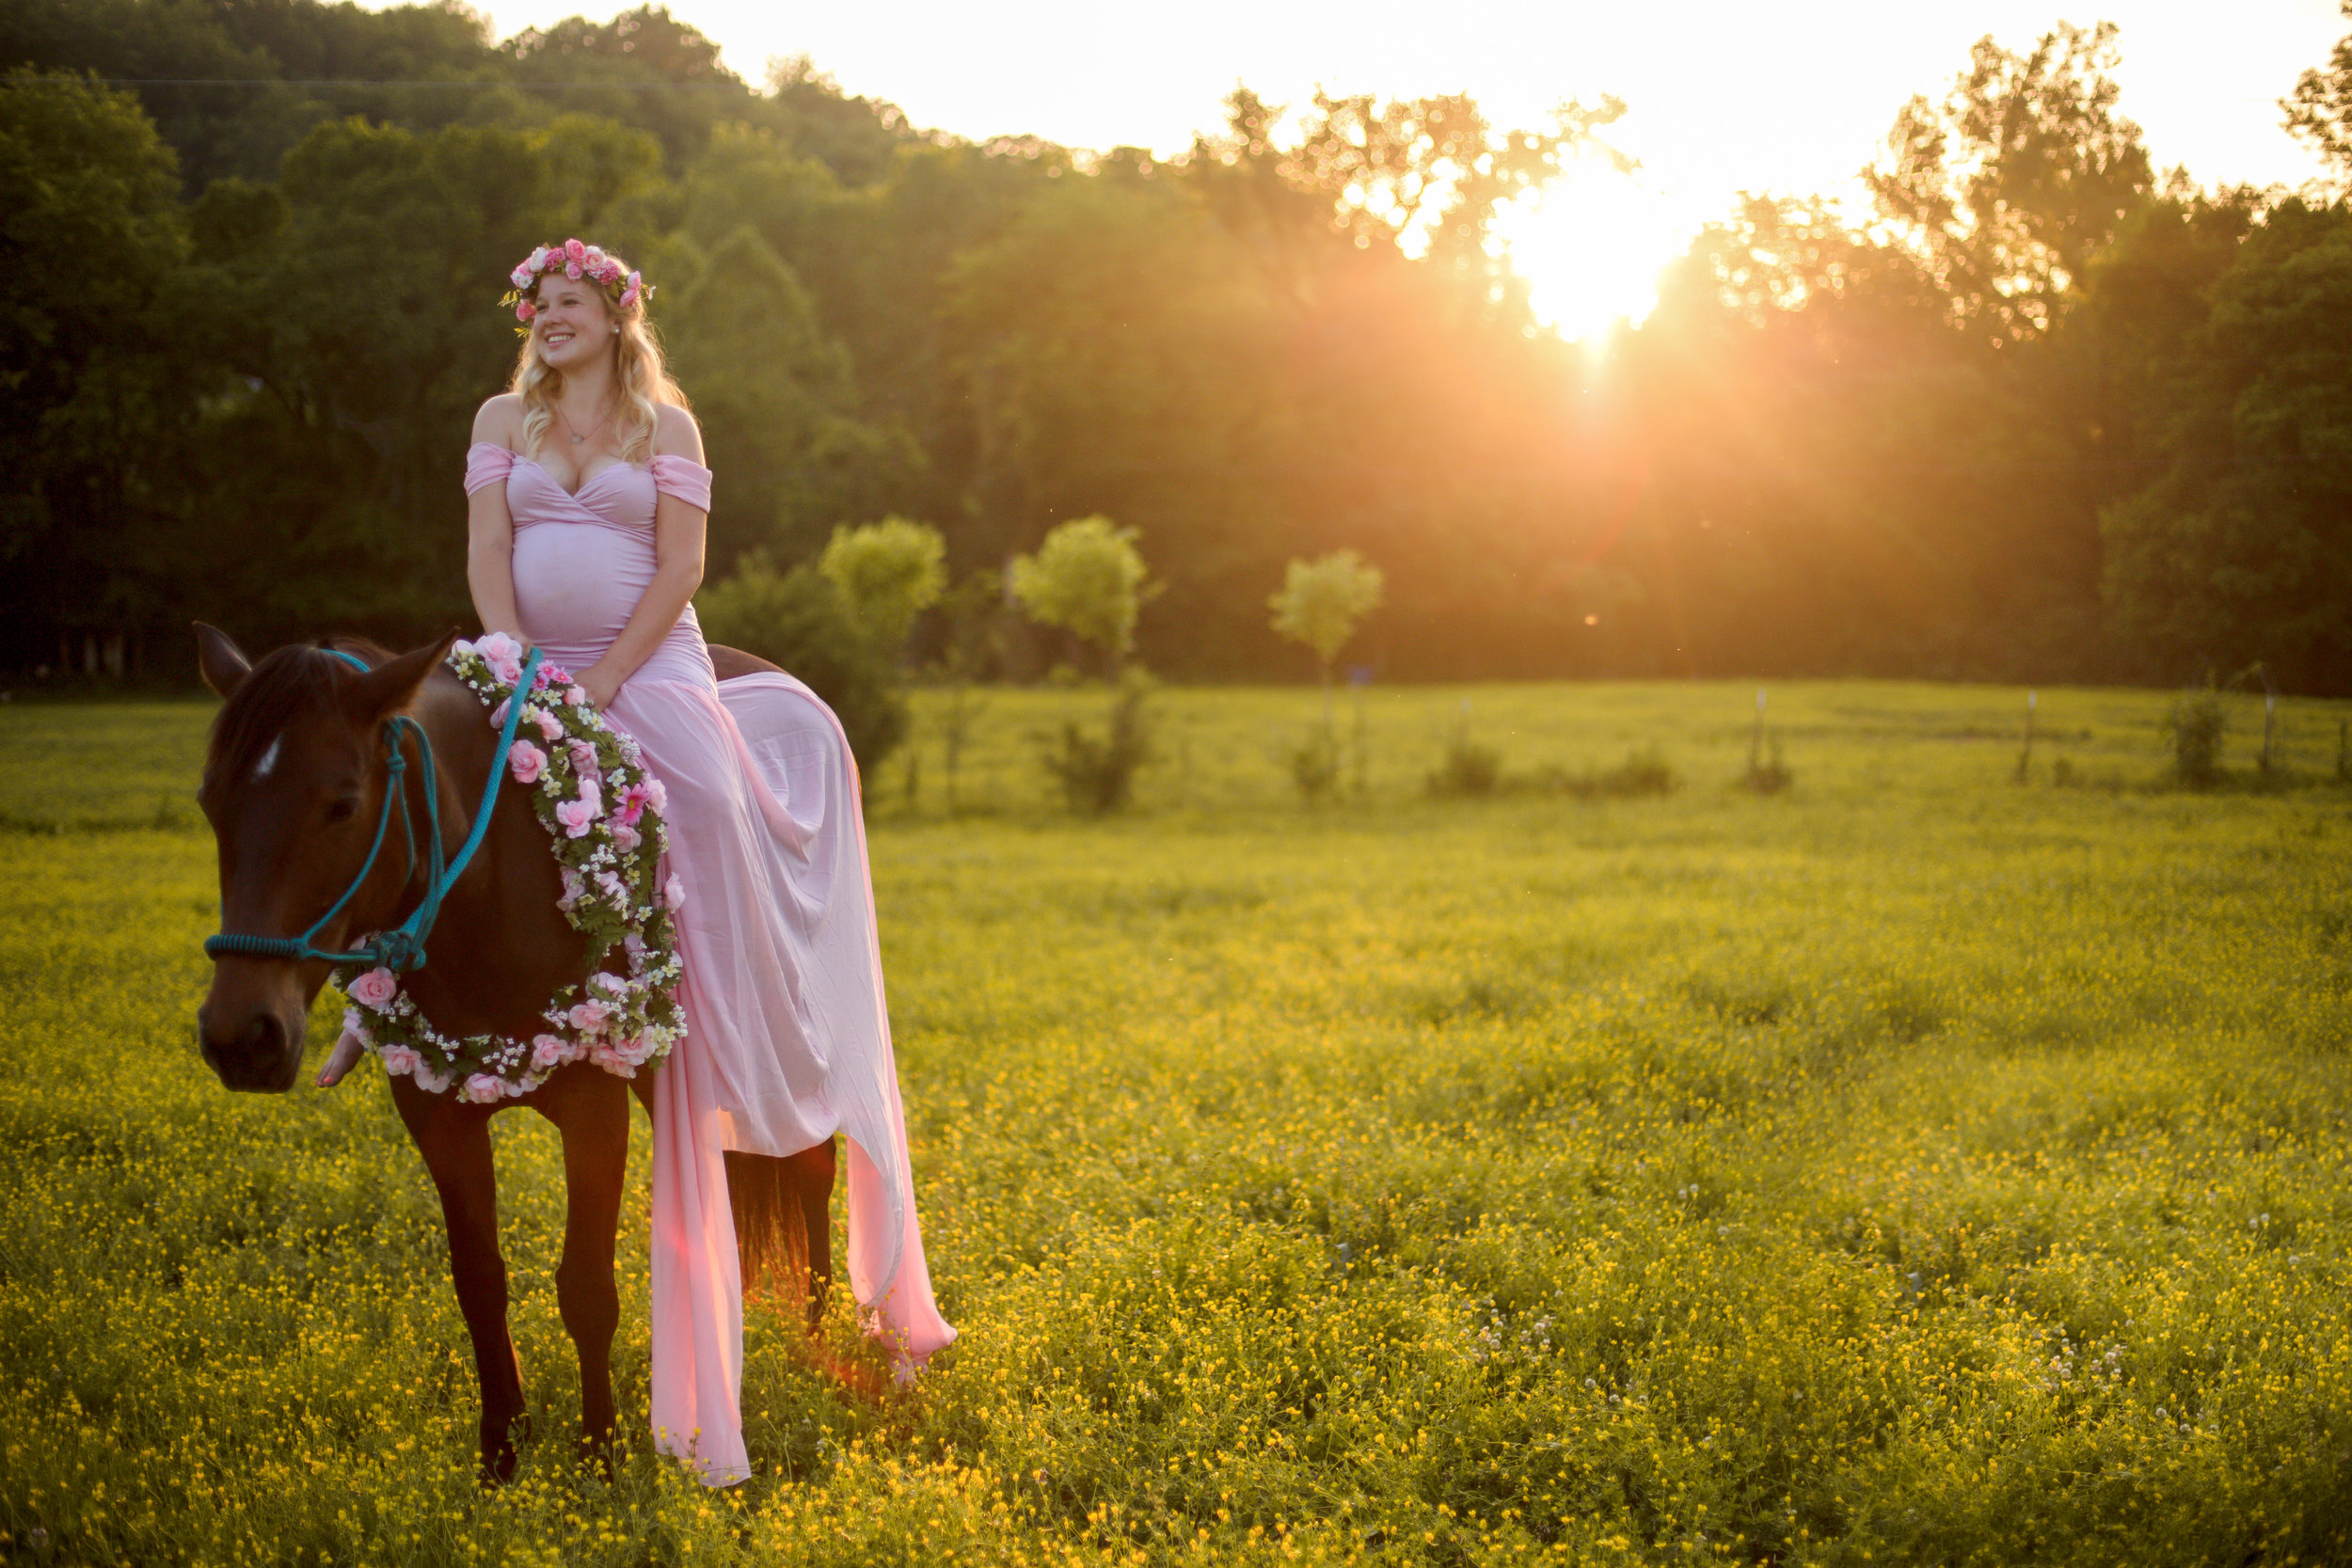 Savanna & Terry Maternity Session - Nashville Newborn Photographer - Chelsea Meadows Photography (51).jpg